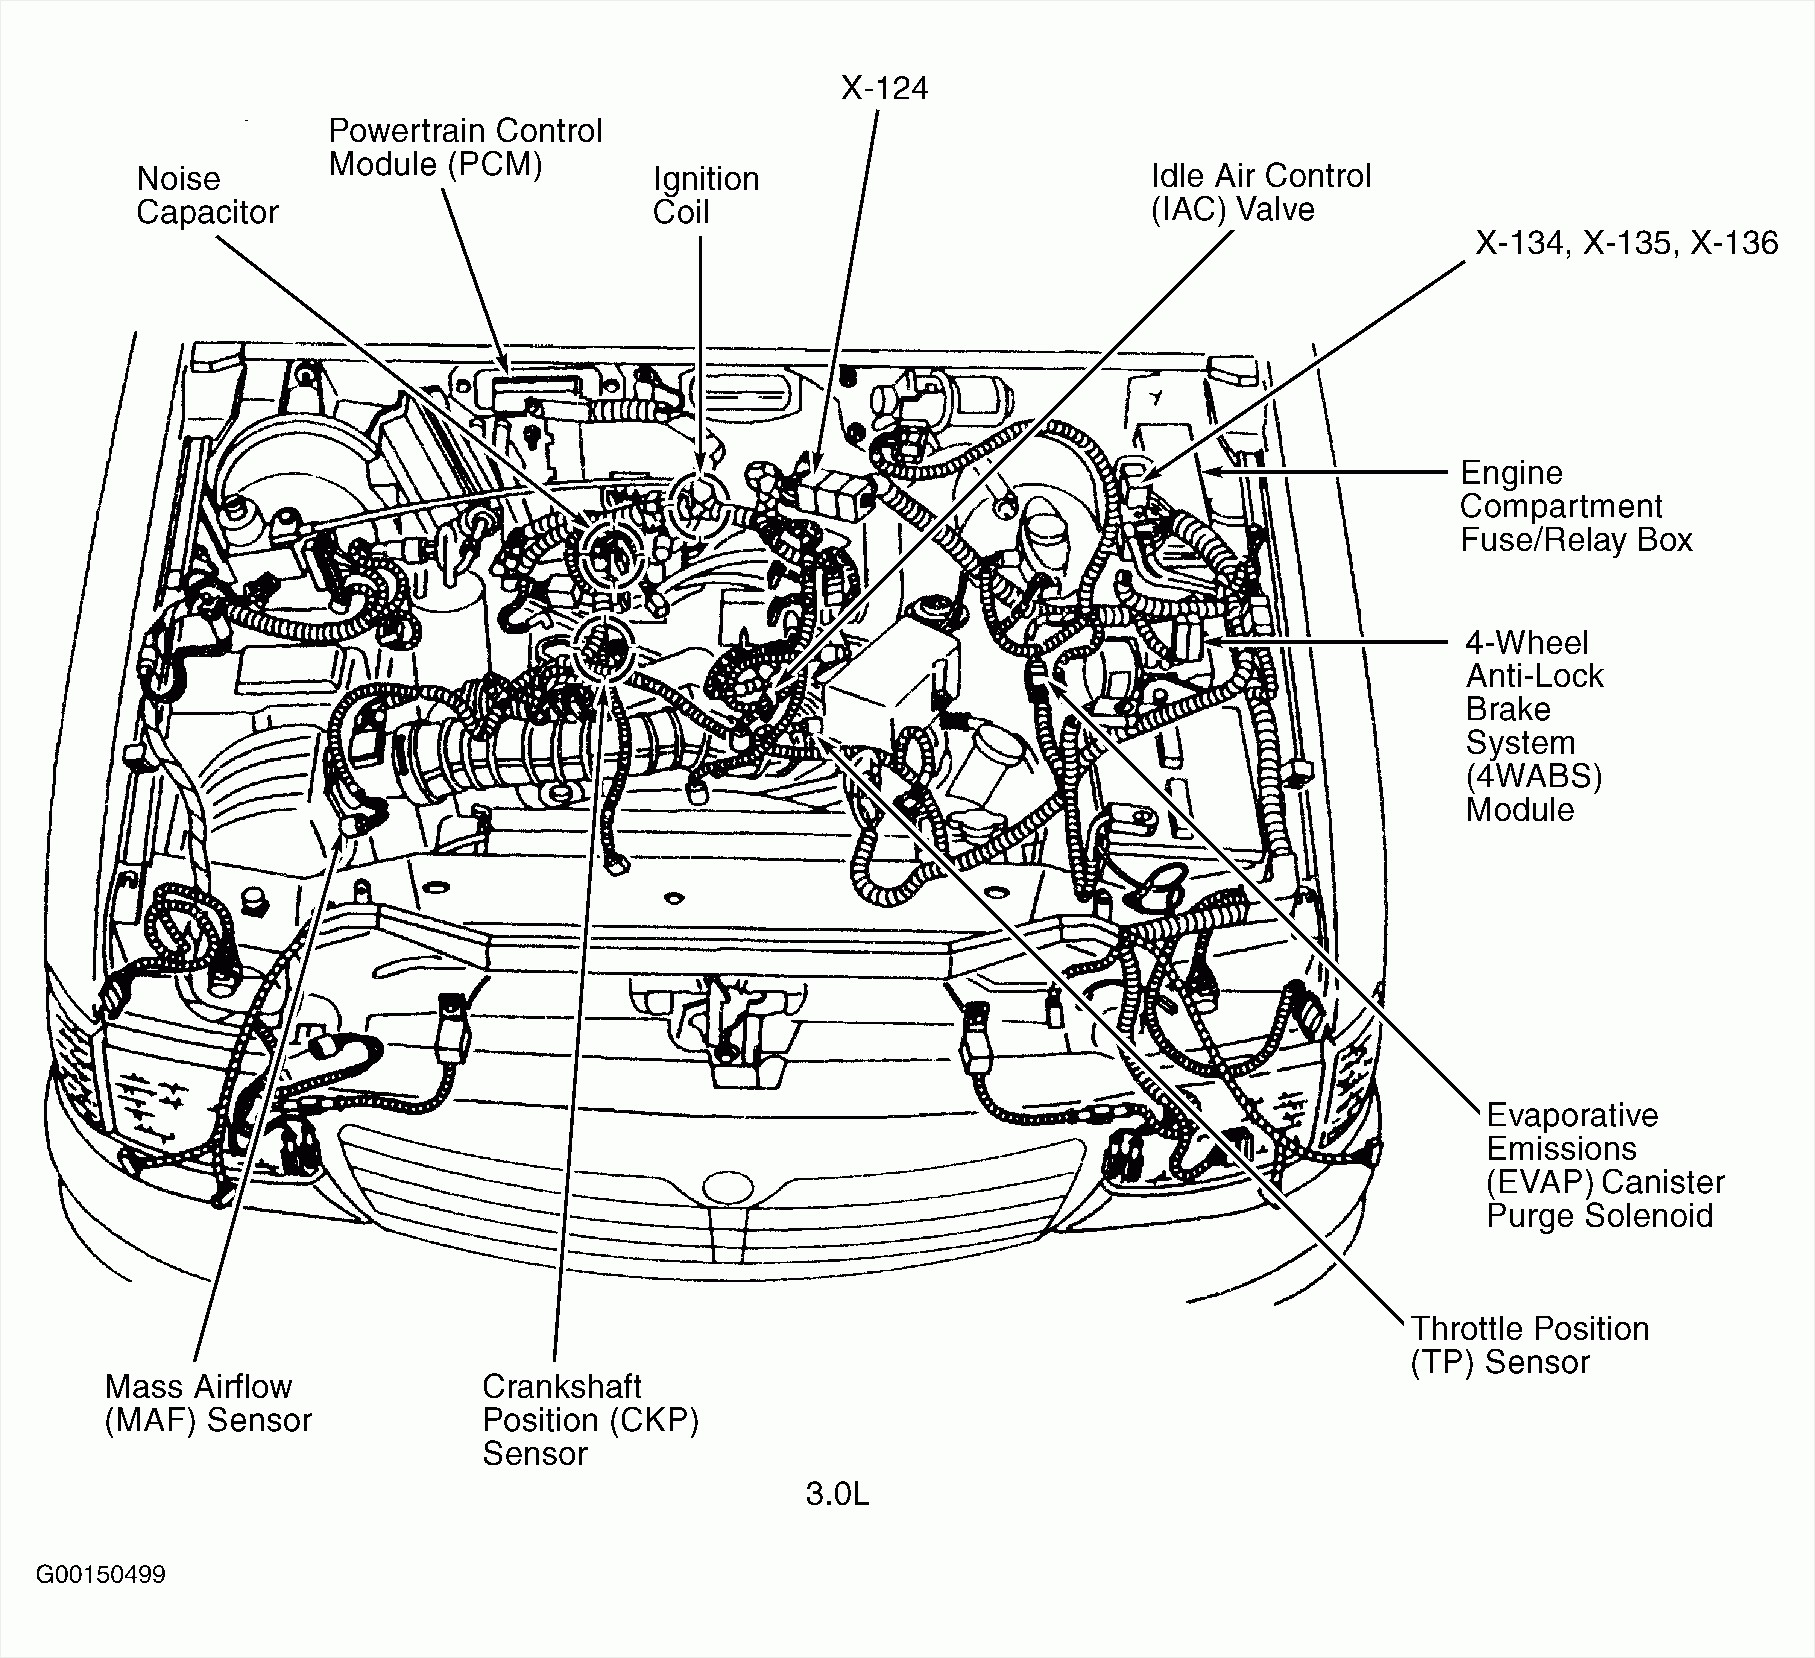 2004 Jeep Wrangler Engine Diagram 1998 Grand Cherokee Stereo Mazda 6 V6 Wiring Diagrams Of